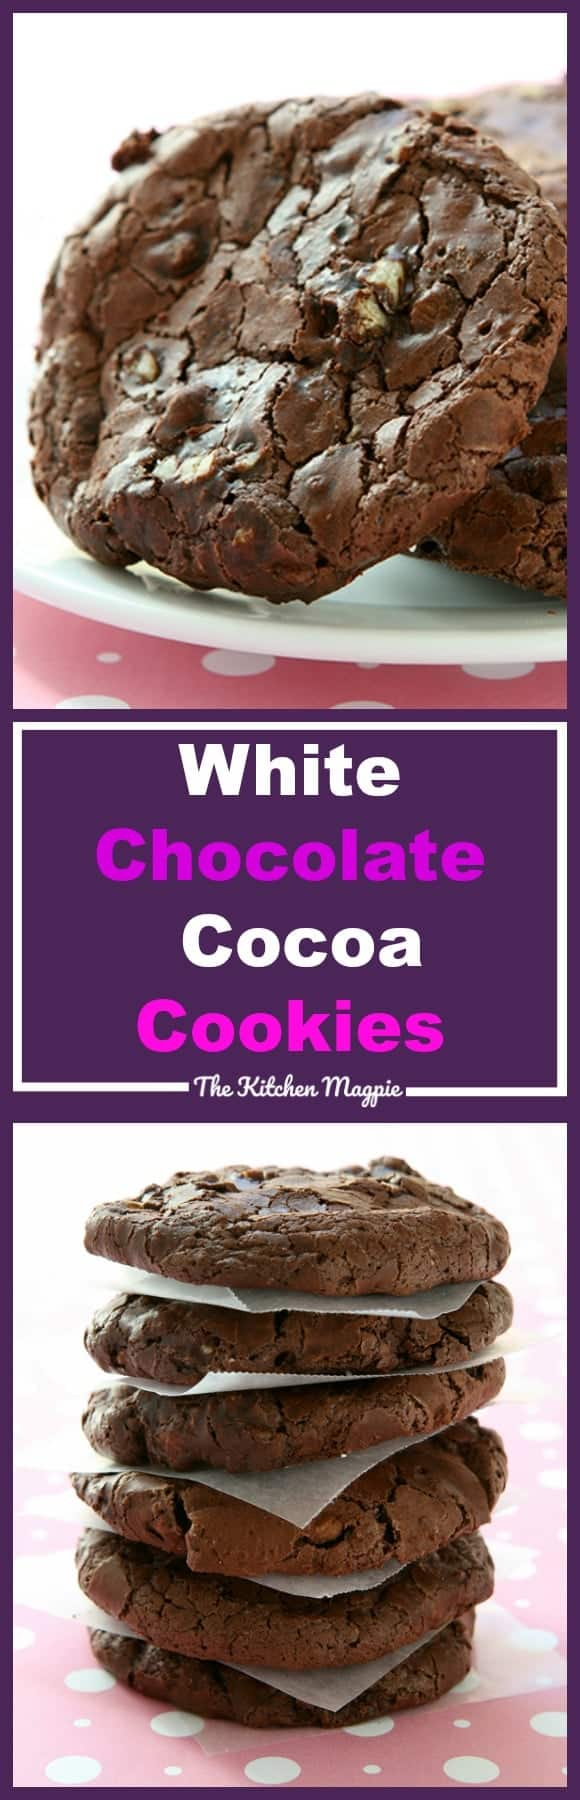 TheseWhite Chocolate Cocoa Cookies are the easiest, most decadent chocolate chip cookie ever! These are perfect for the white chocolate chip lover! Recipe from @kitchenmagpie #cookies #chocolate #recipe #dessert